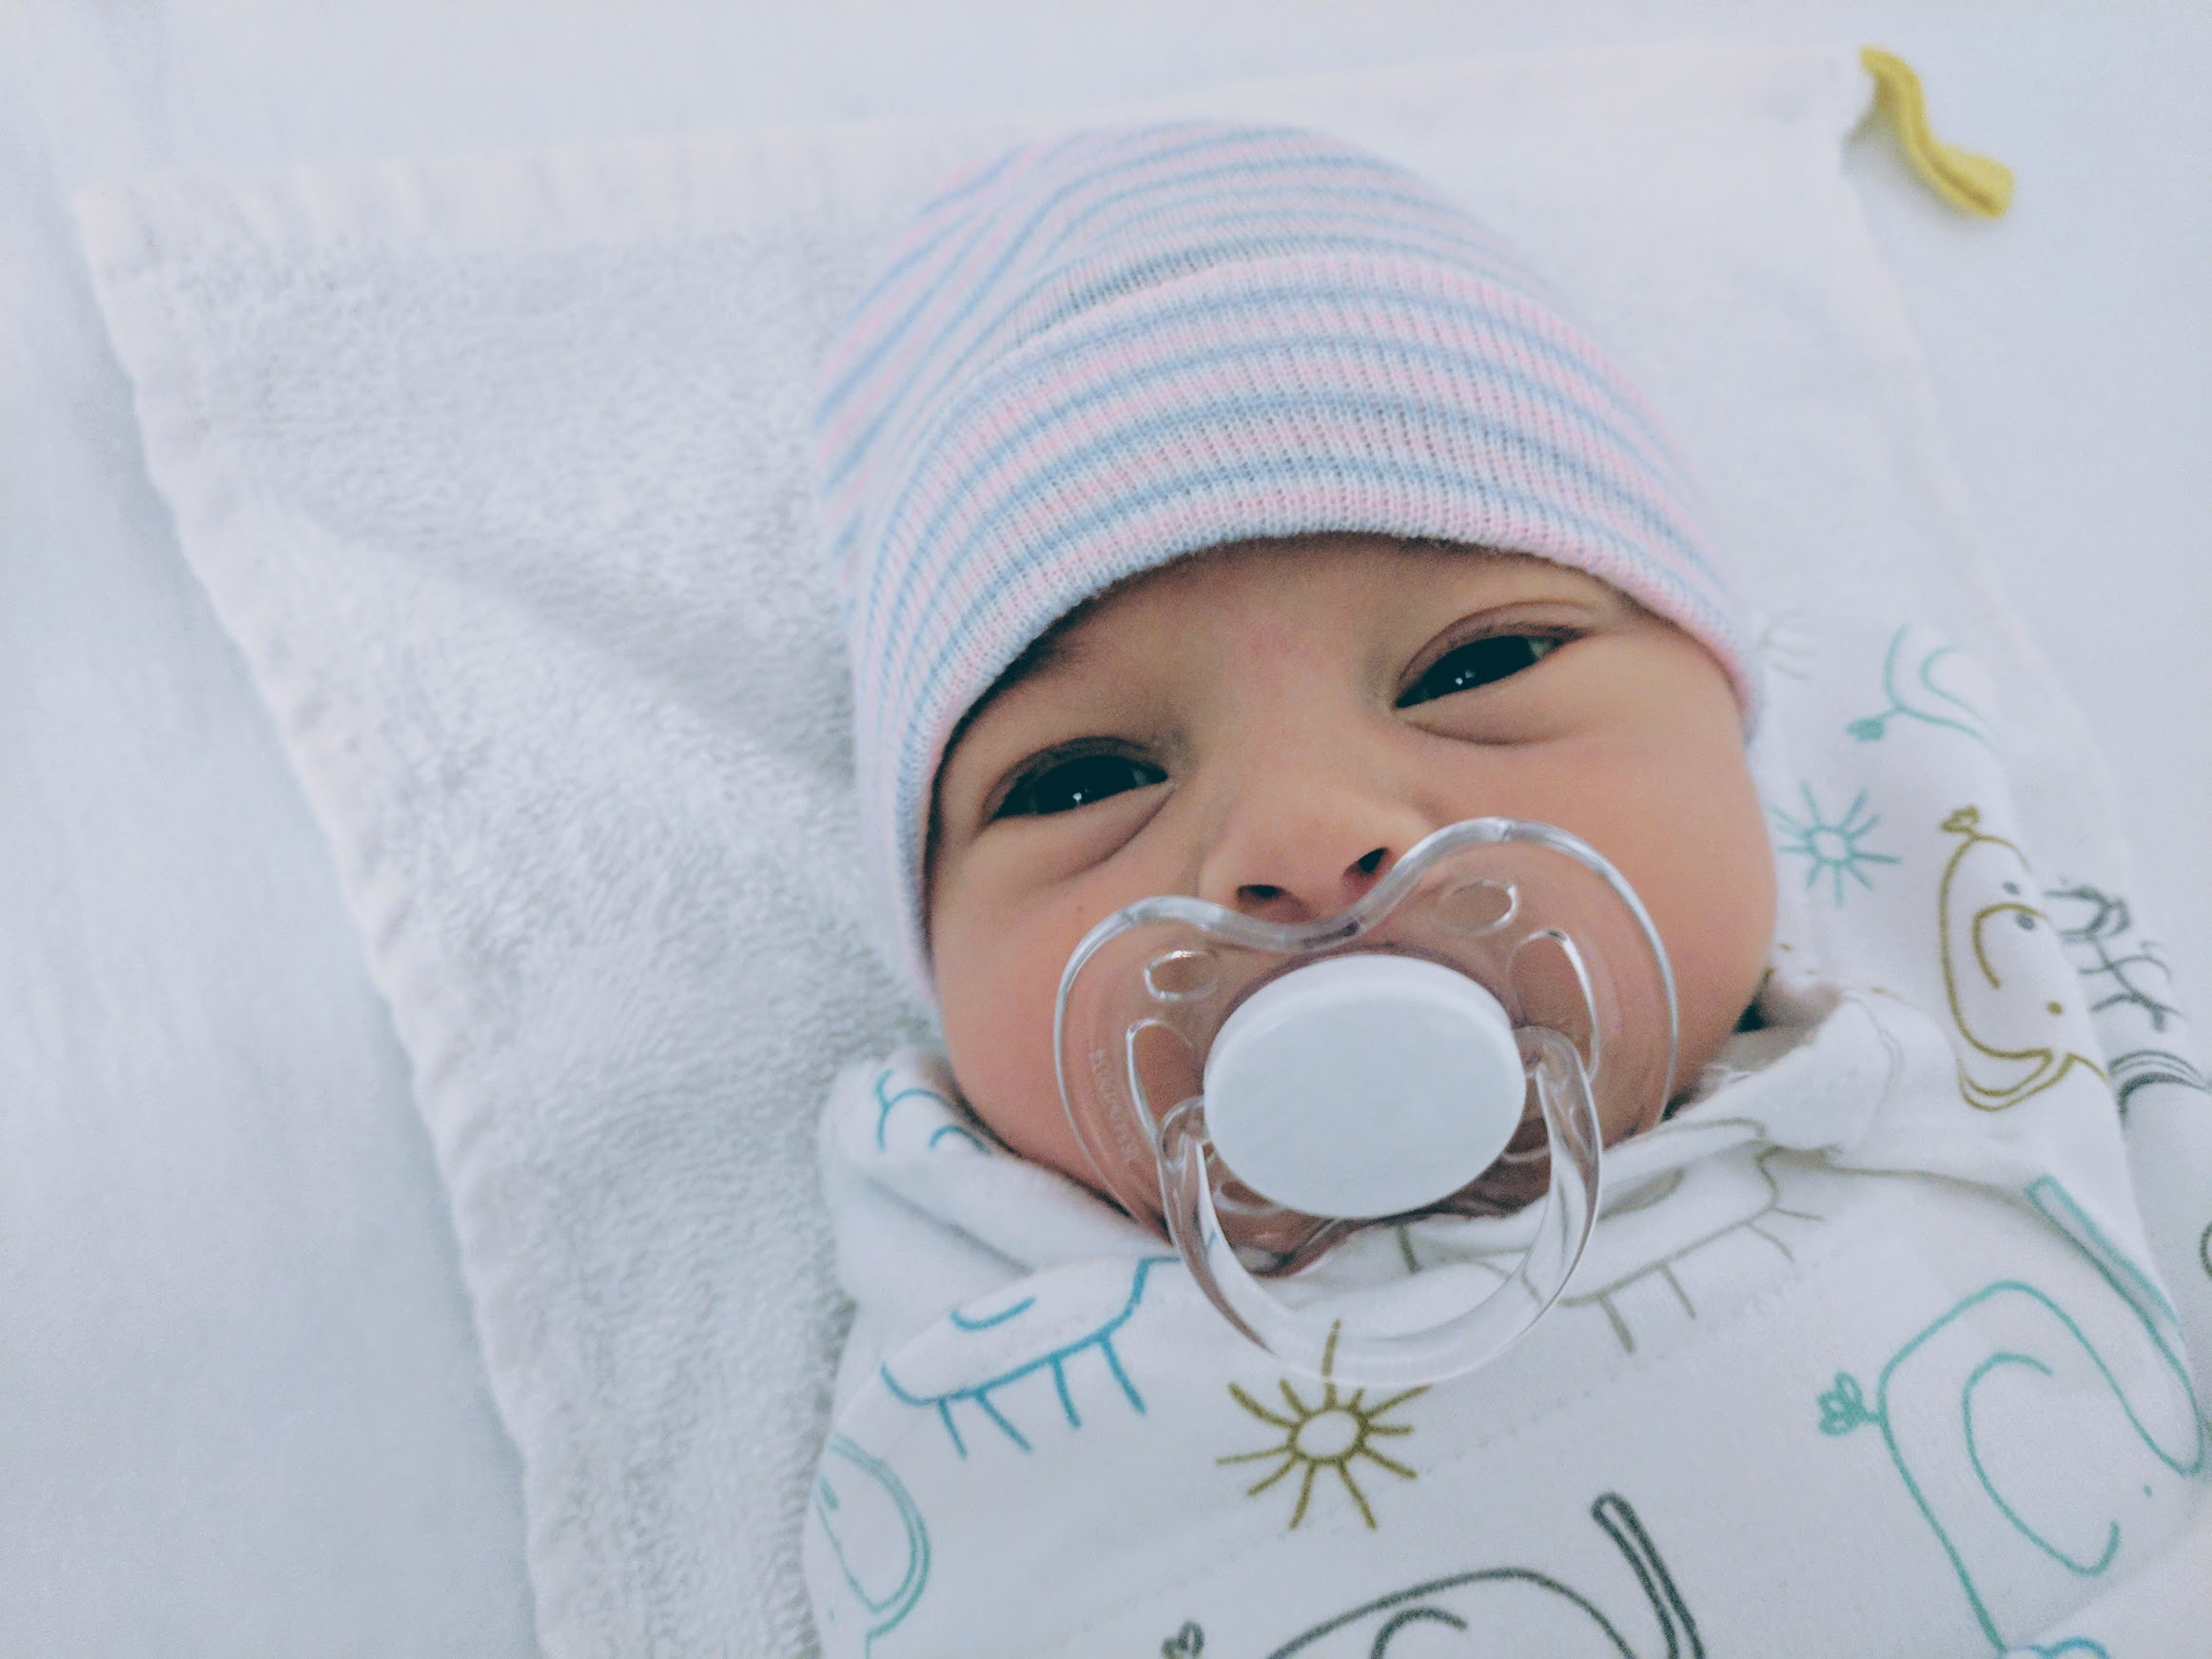 93e5839f6 Join us in welcoming the adorable Baby Astrid into the world. Her parents  and the amazing surrogate, who made this bundle of joy possible, are all  doing ...